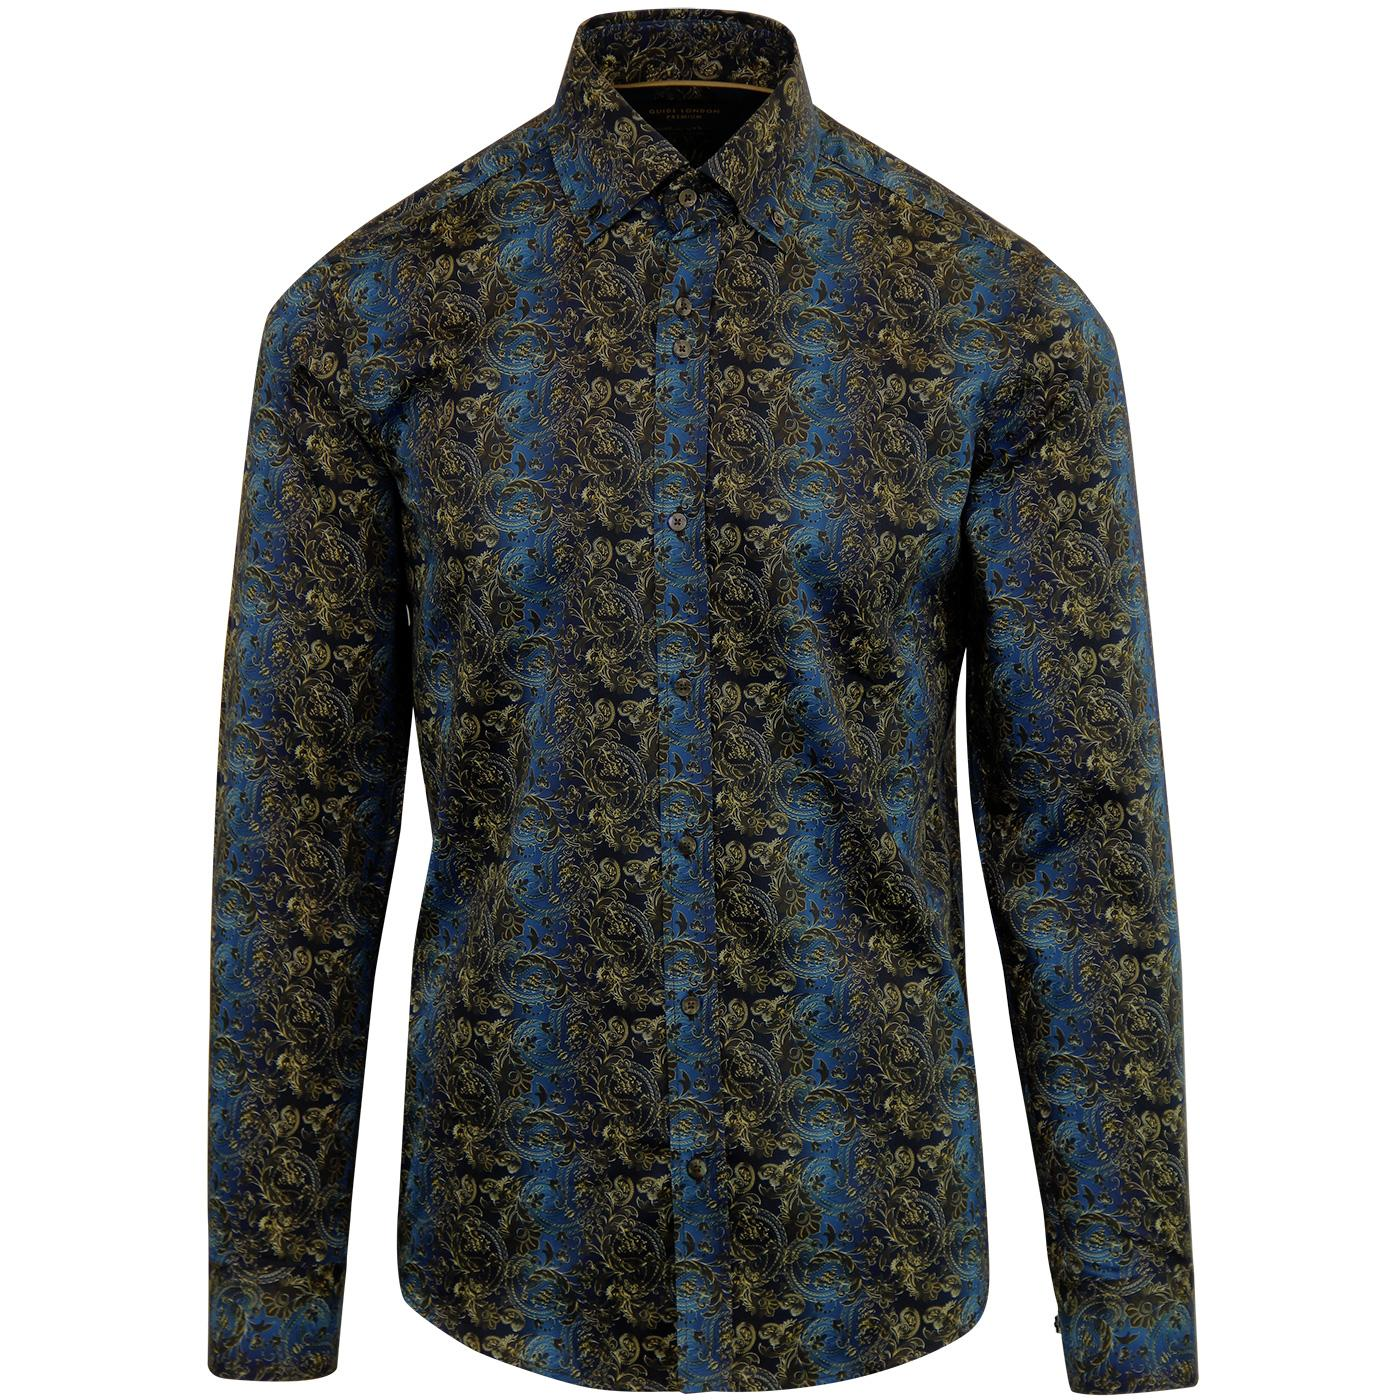 GUIDE LONDON Men's Retro Mod Sateen Paisley Shirt